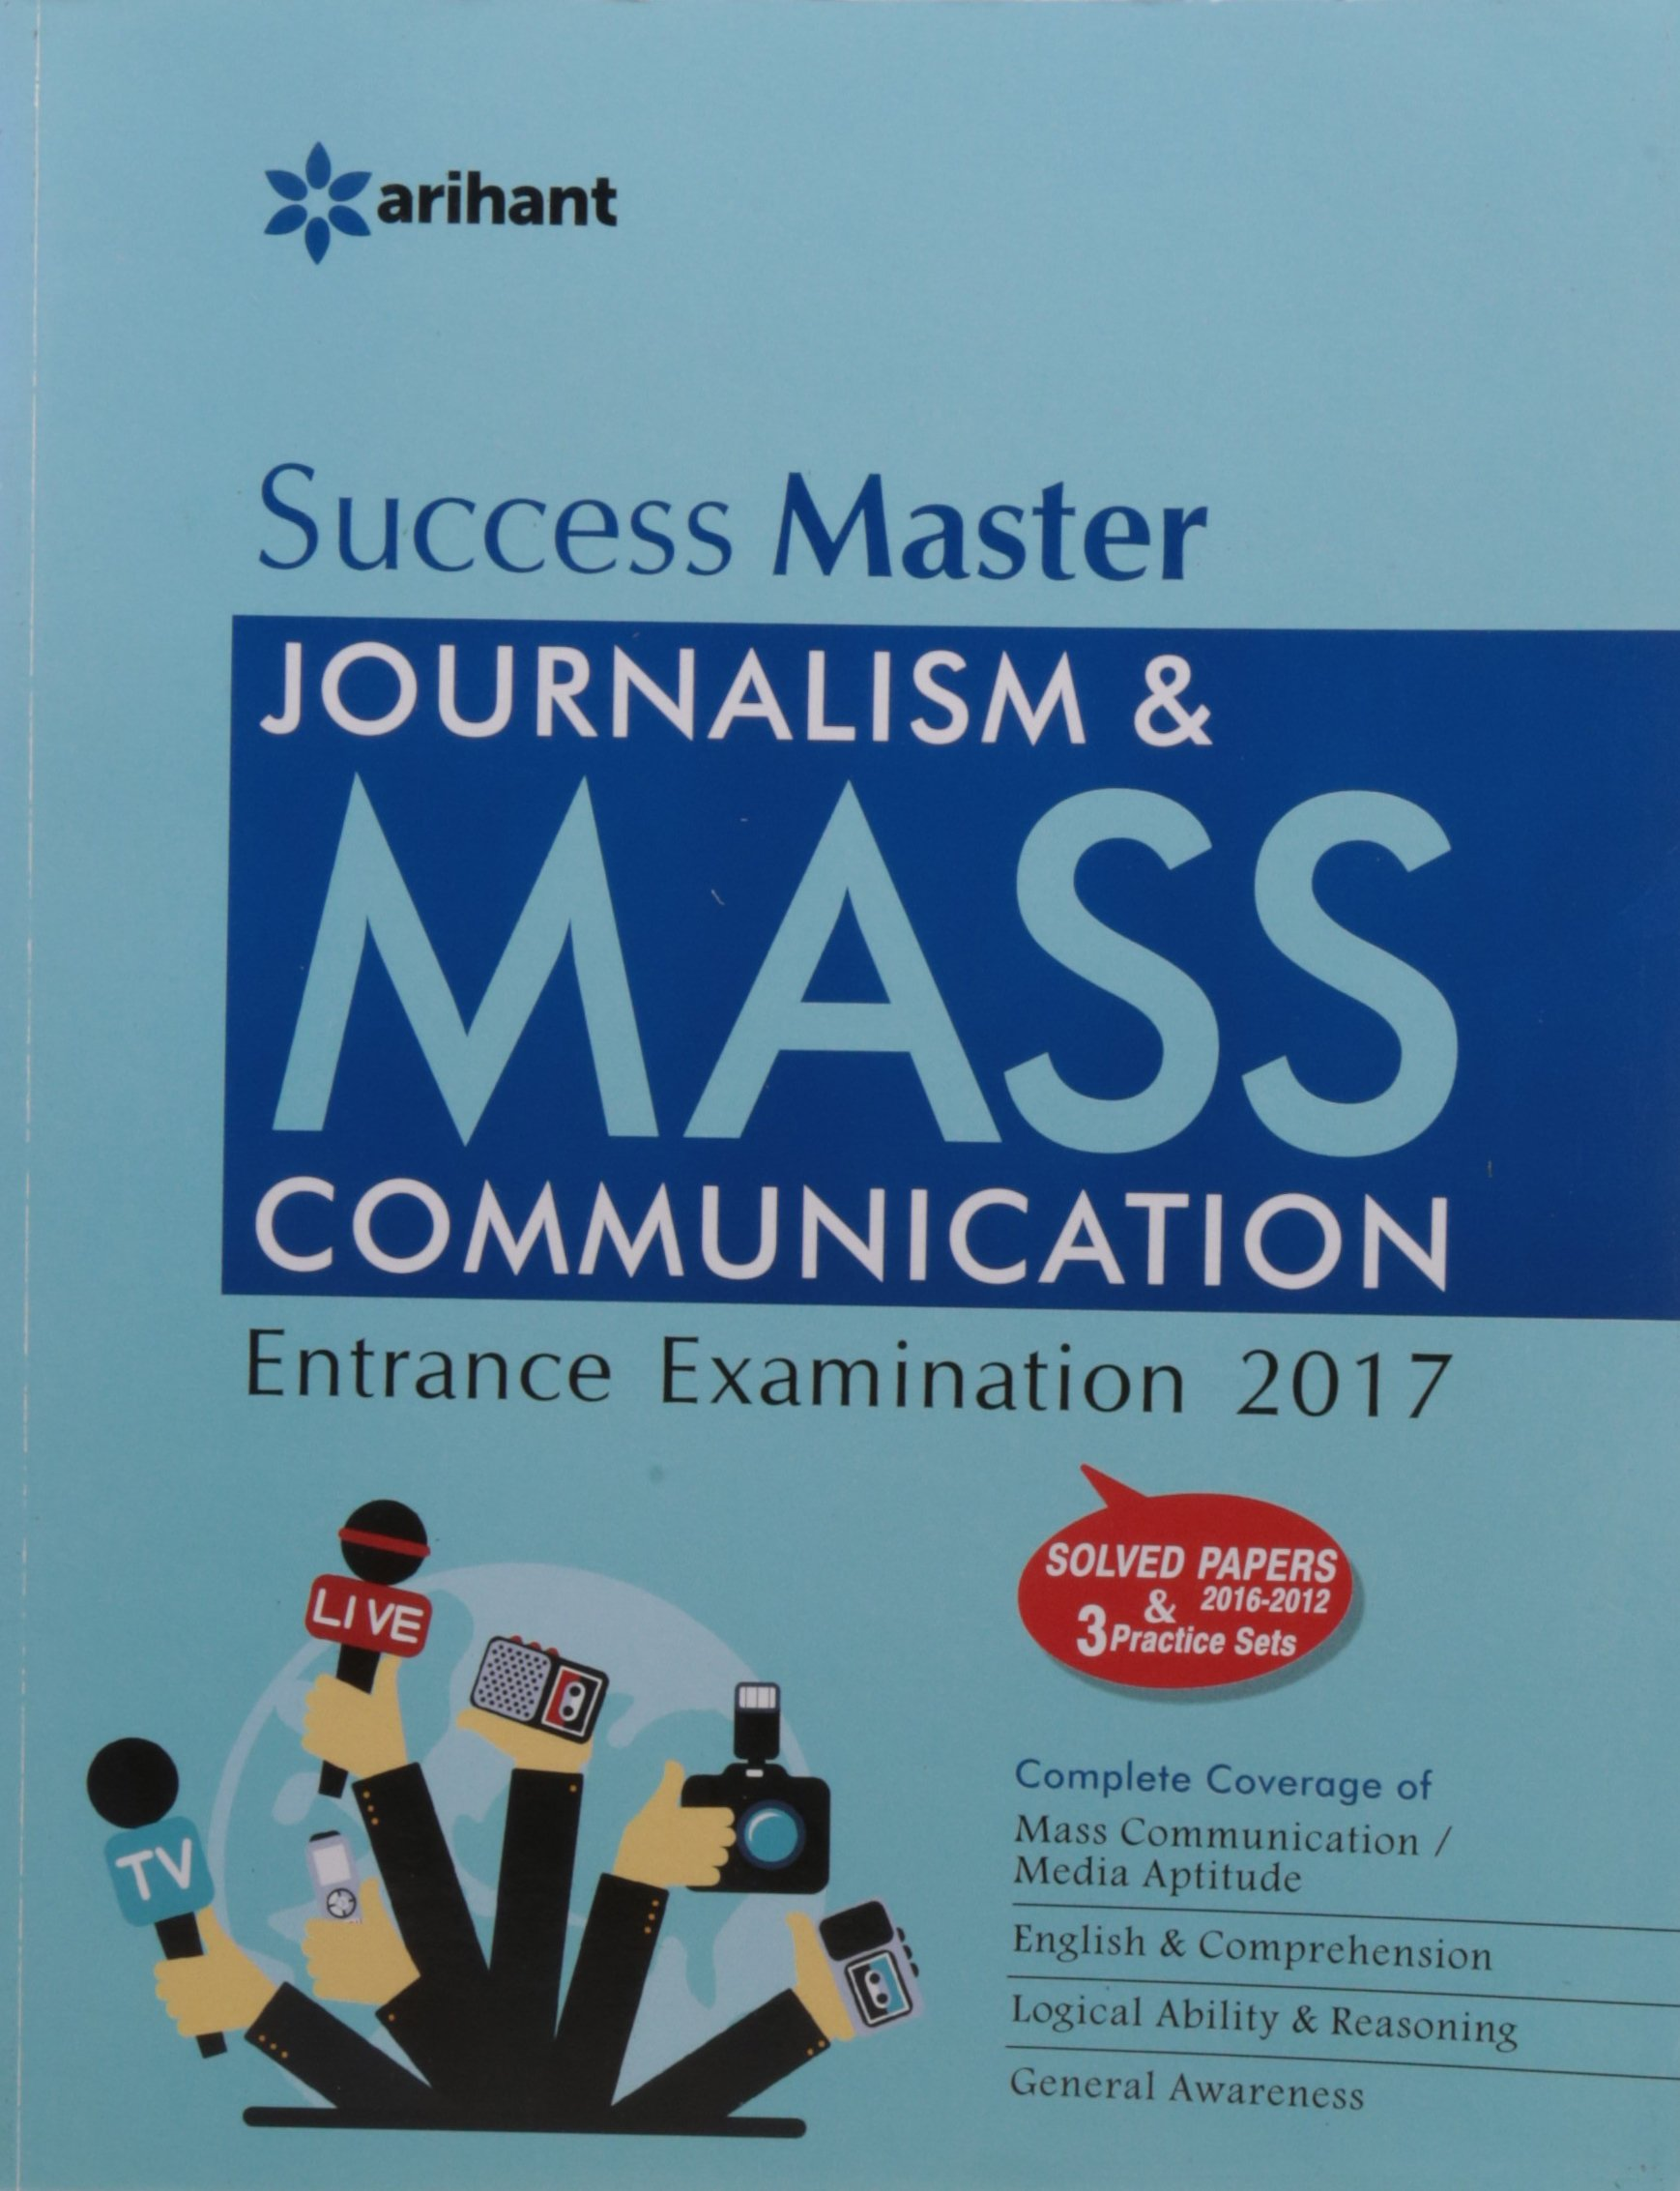 for mass comm entrance exam